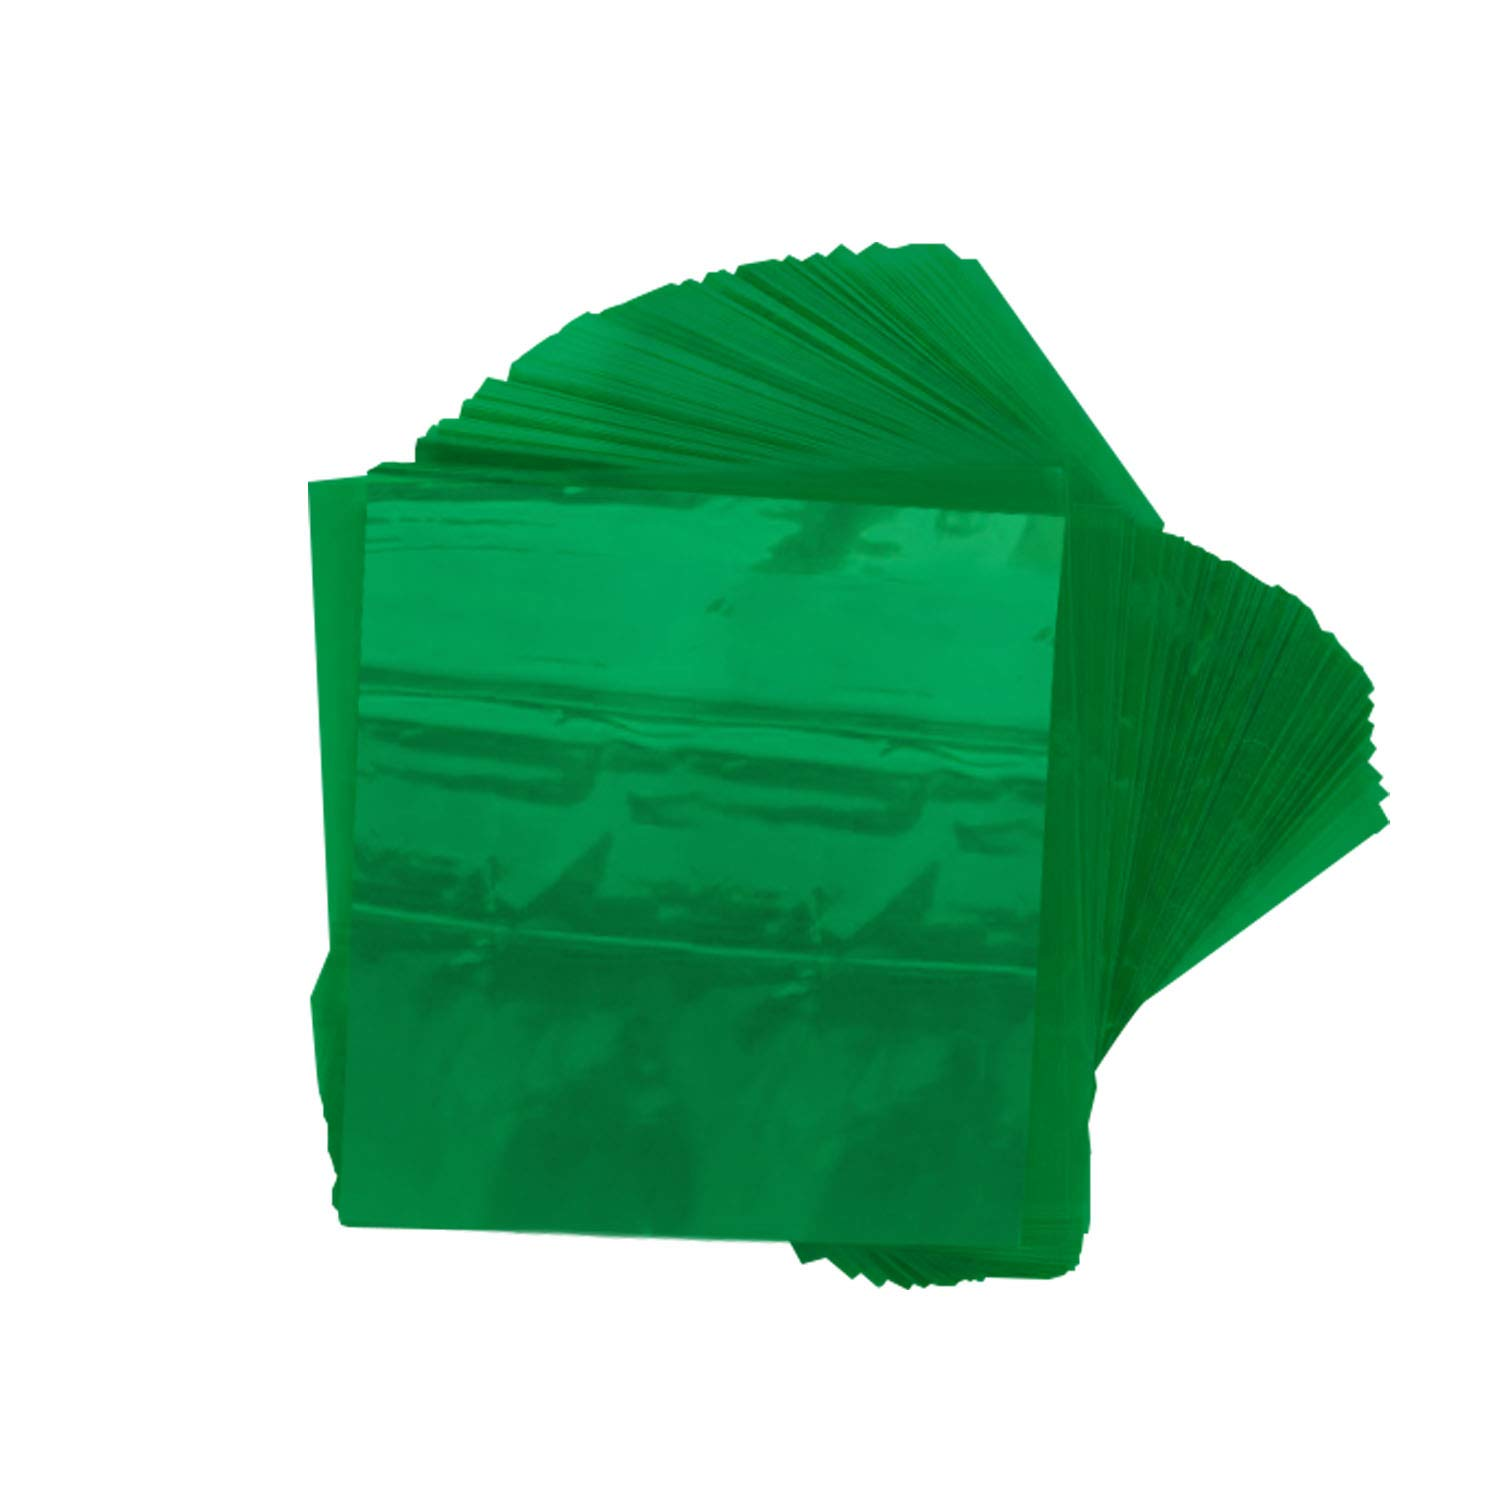 Size 5x5 Inch Holds Tight Perfect for All Soft or Hard Candies Iridescent Oasis Supply Twistable Cellophane Wrappers for Candy 500 Count